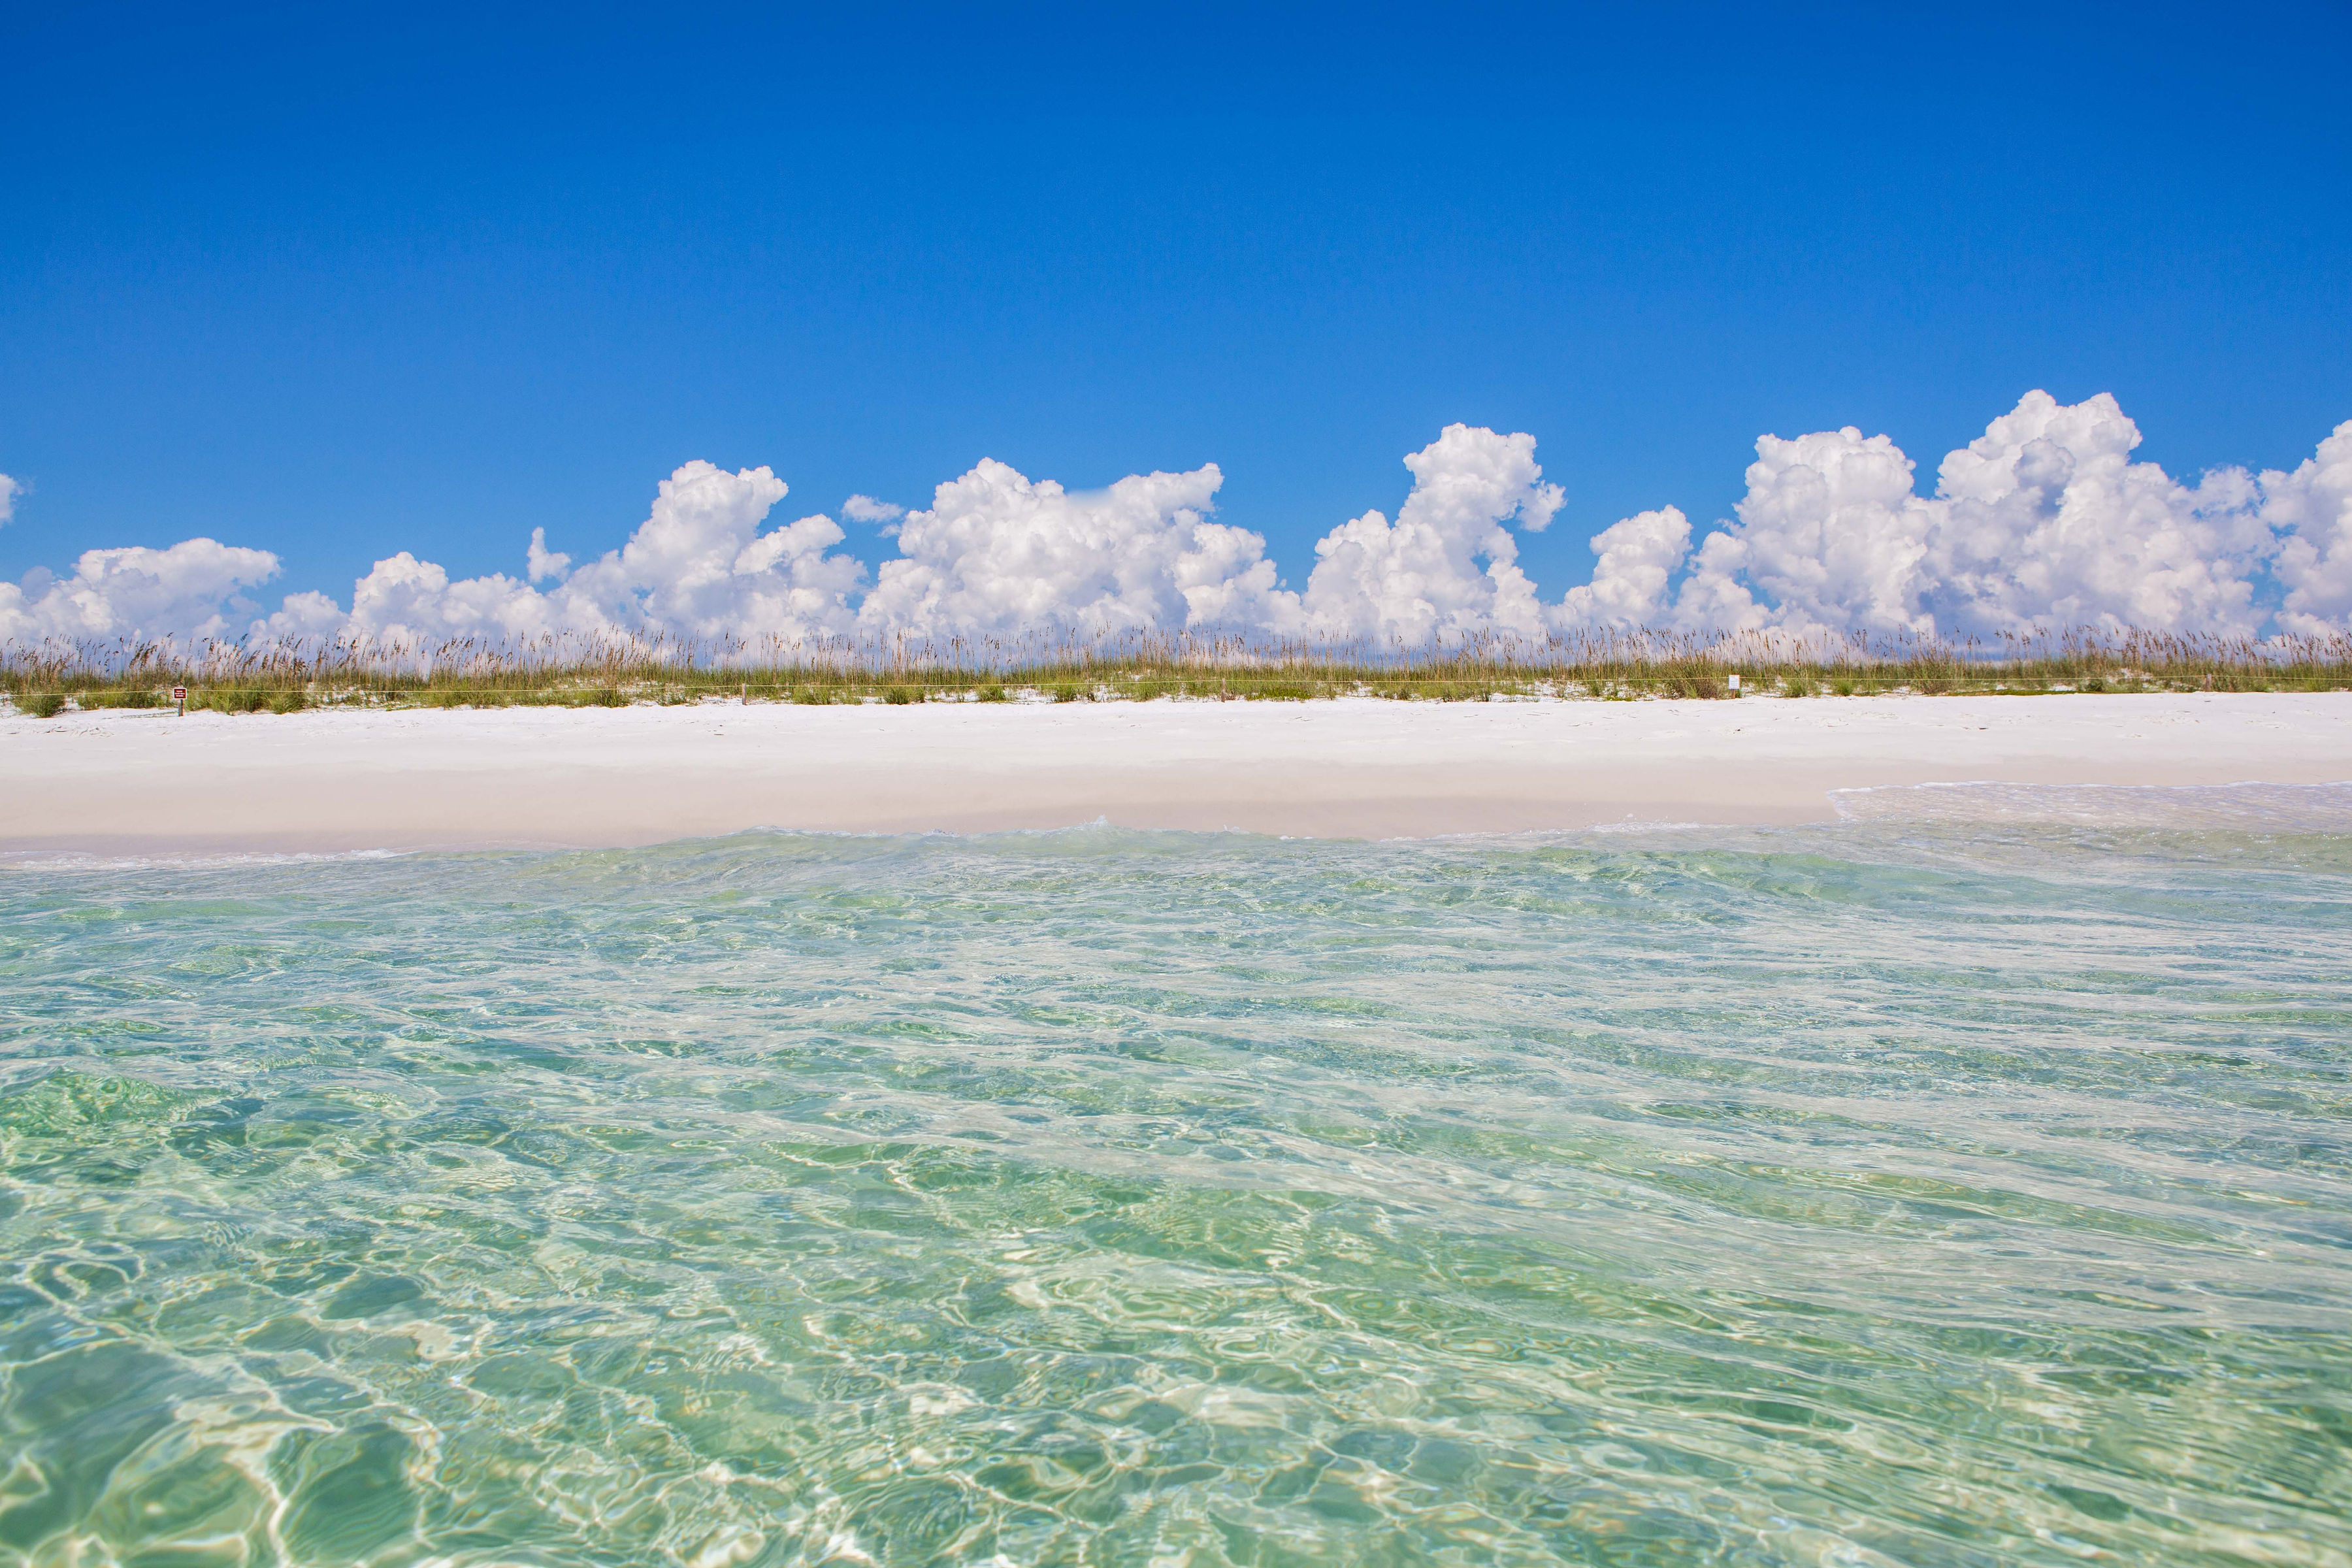 Beaches of Florida's Emerald Coast